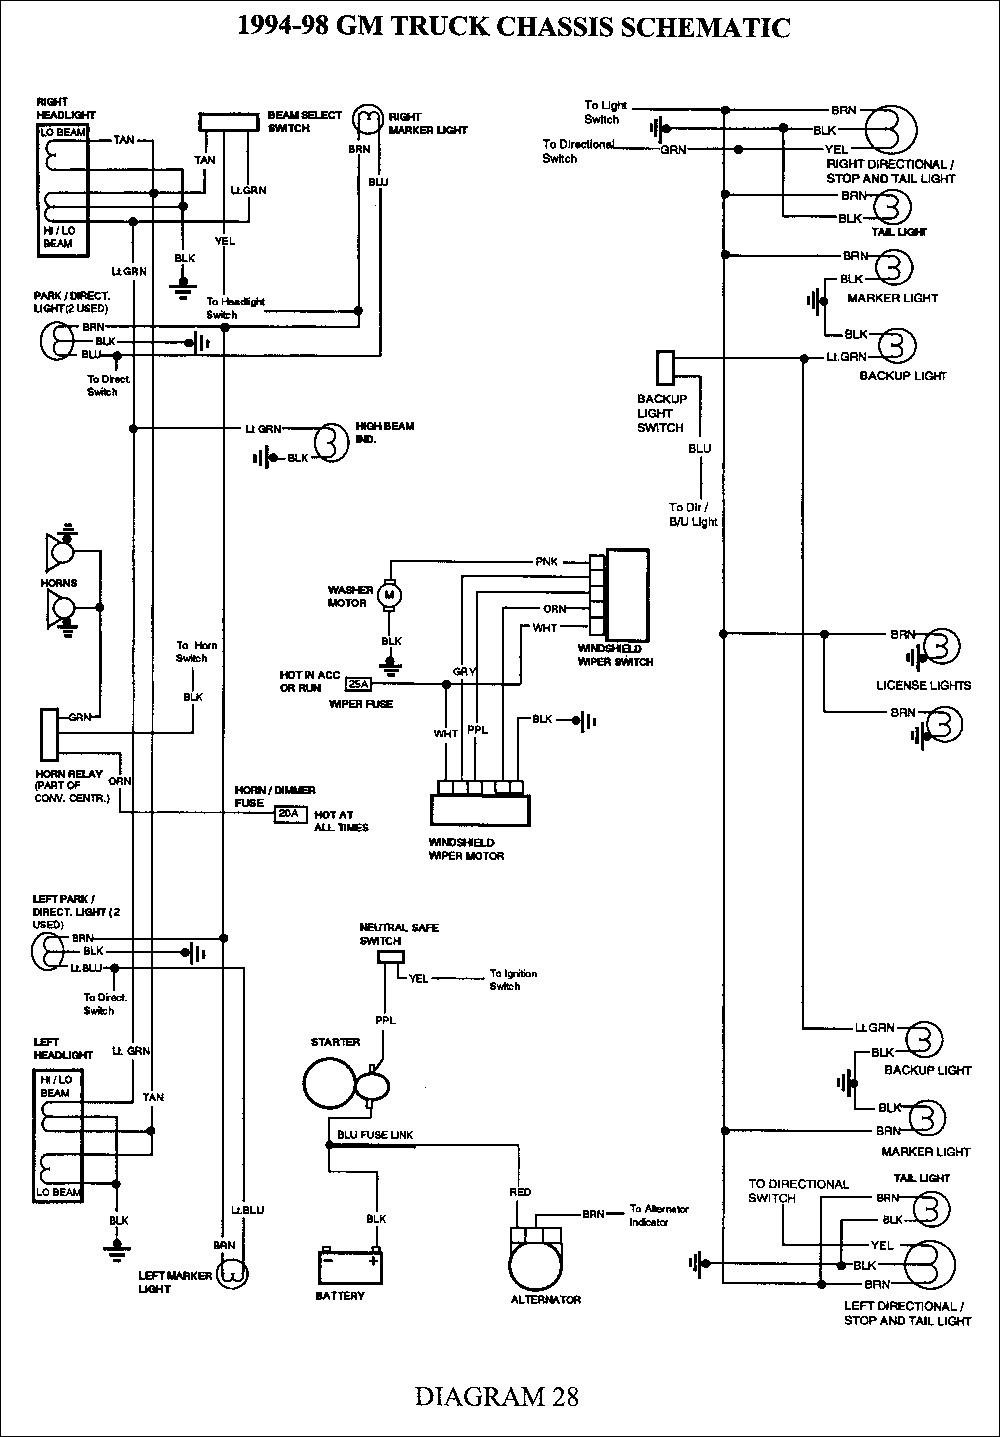 Diagram Of Wiring 2006 Gmc Sierra Truck - Wiring Diagram M2 on